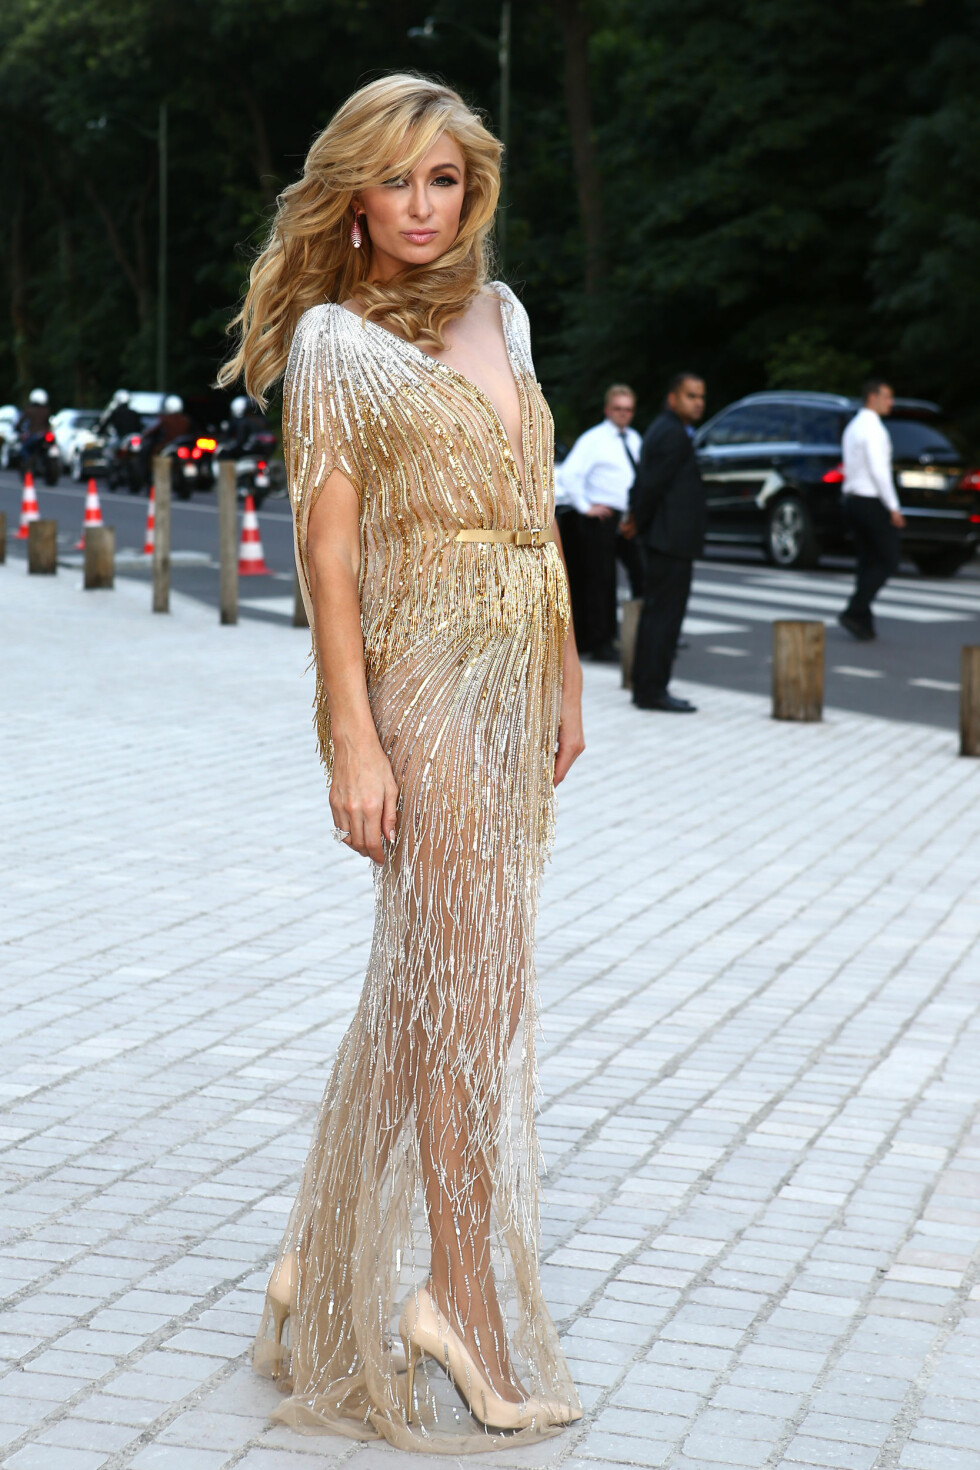 Paris Hilton arriving at the The Art of Giving Love Ball Naked Heart Foundation held at Louis Vuitton Foundation as part of Paris Fashion Week Haute Couture Fall/Winter 2016/17 on July 6, 2016 in Paris, France. Photo by ABACAPRESS.COM Foto: Abaca